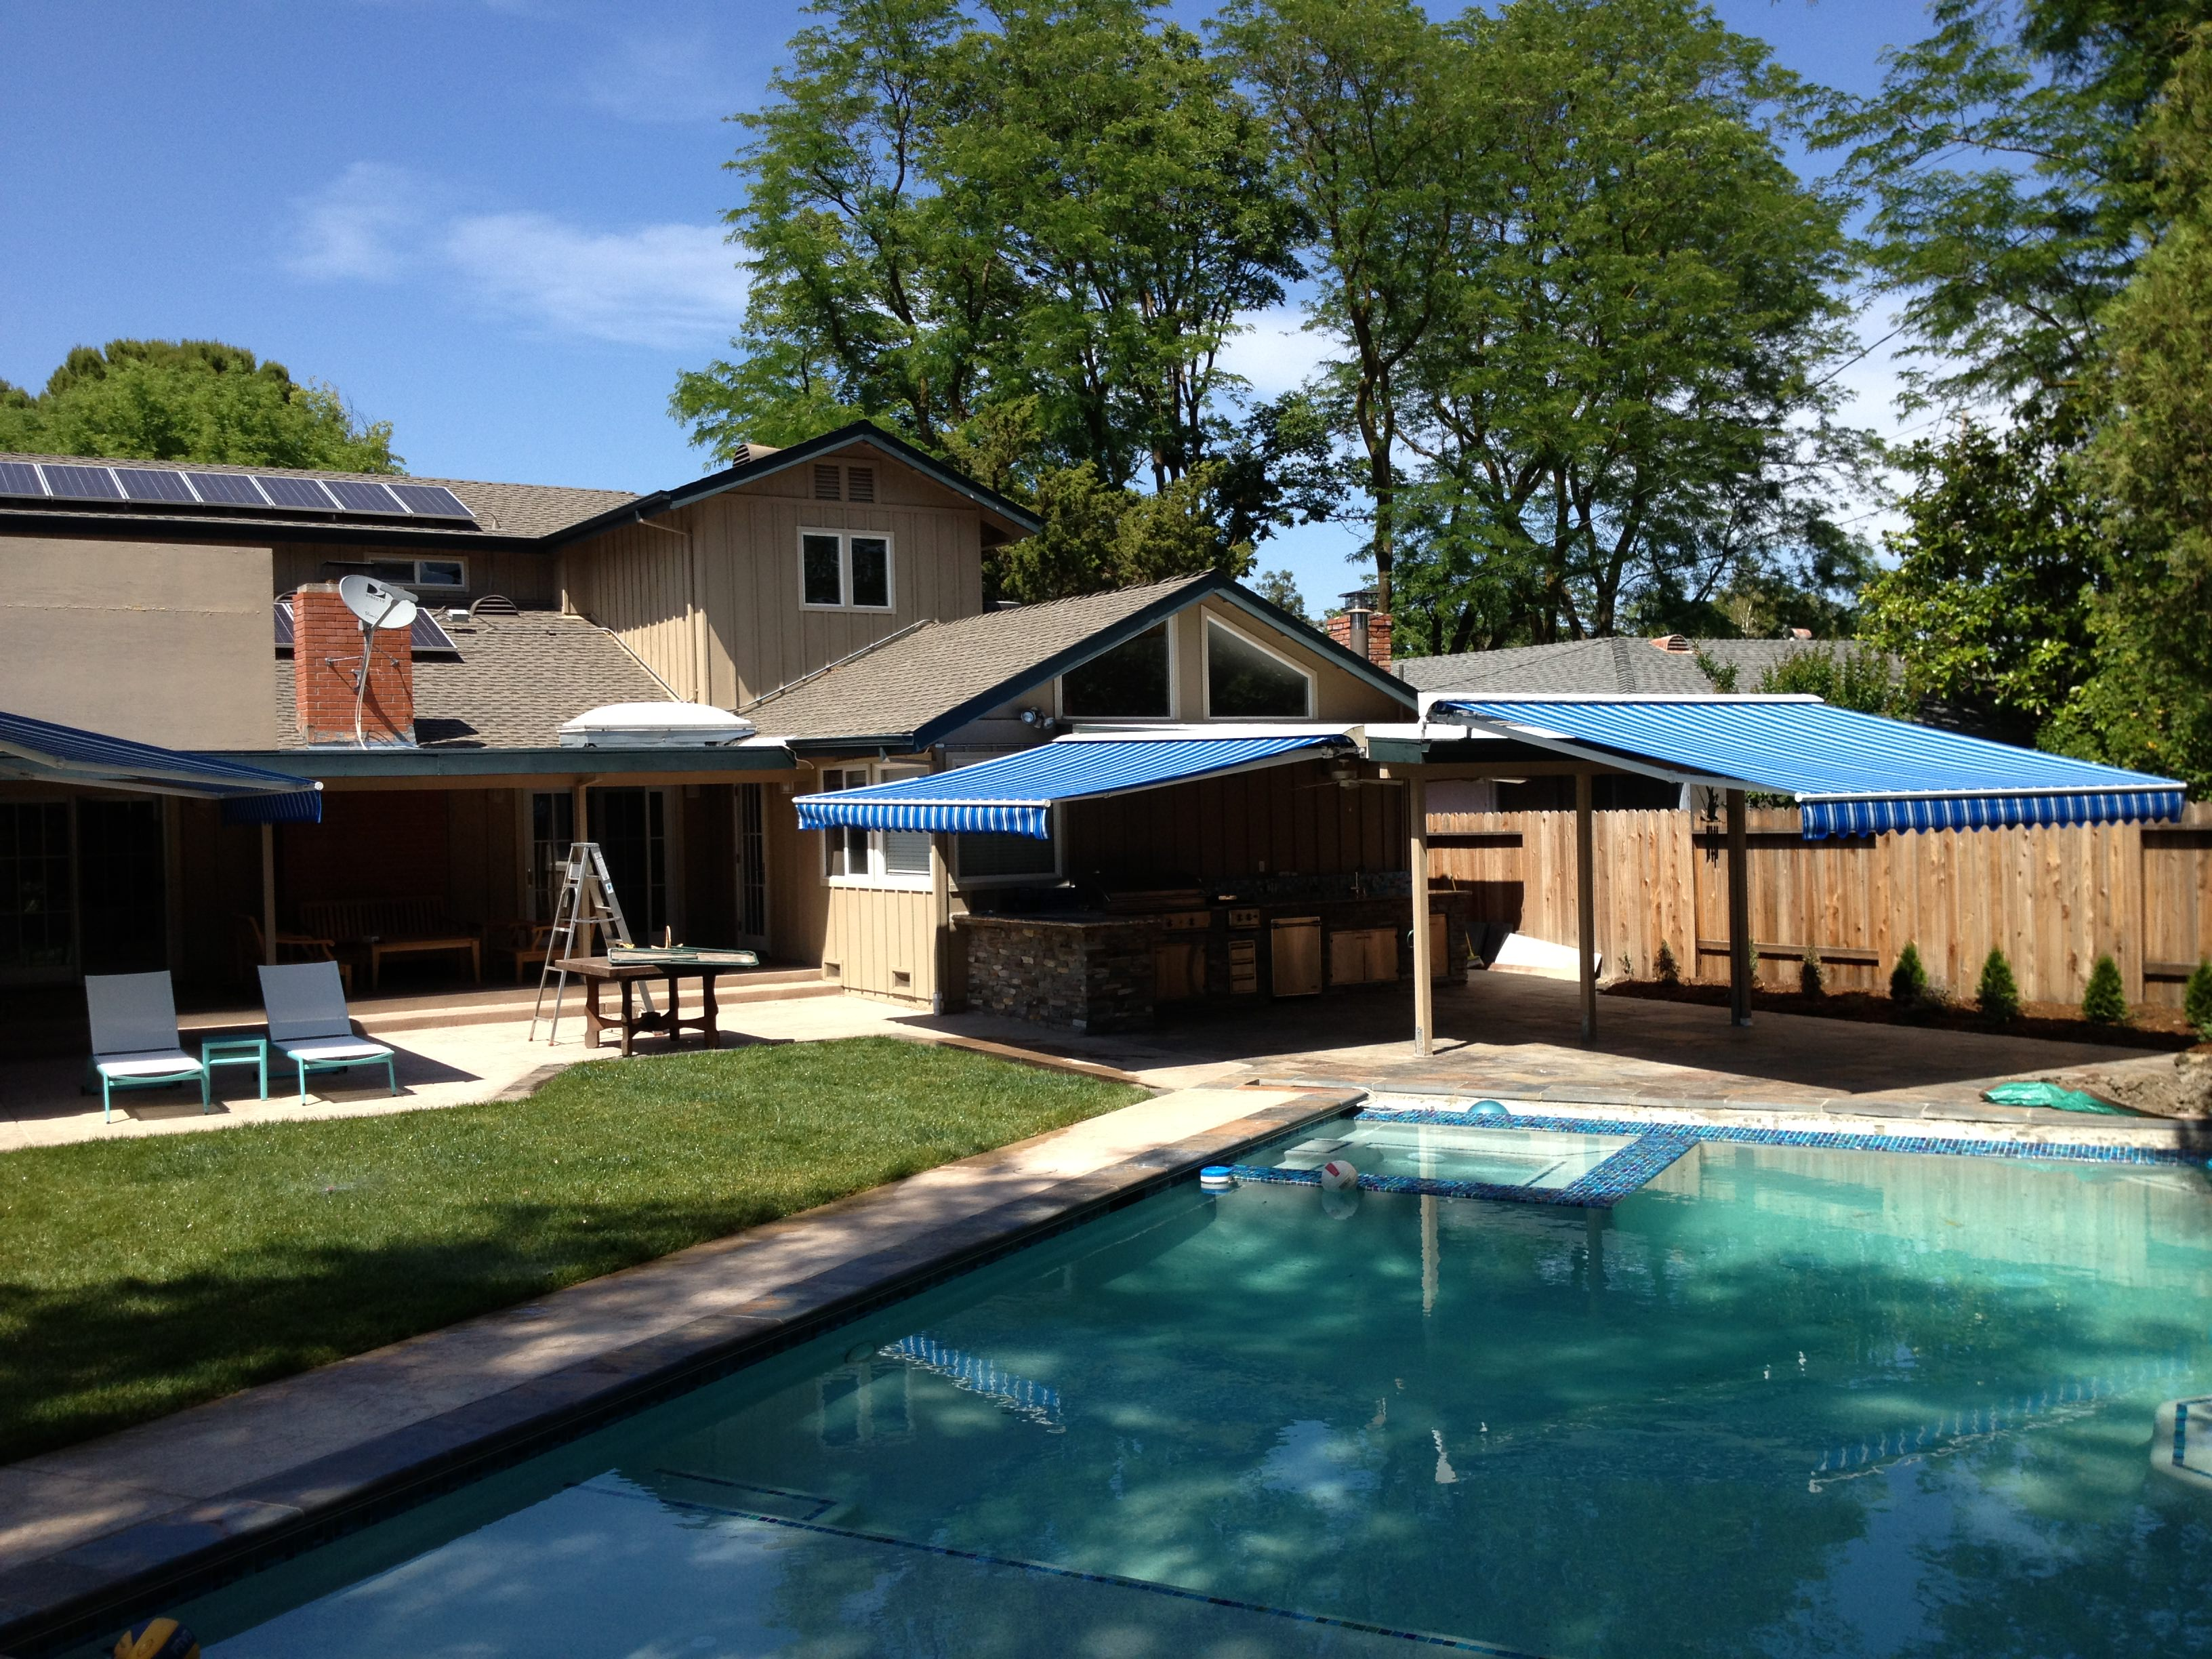 co awnings evans awning providing custom covers retractable patio and alumawood